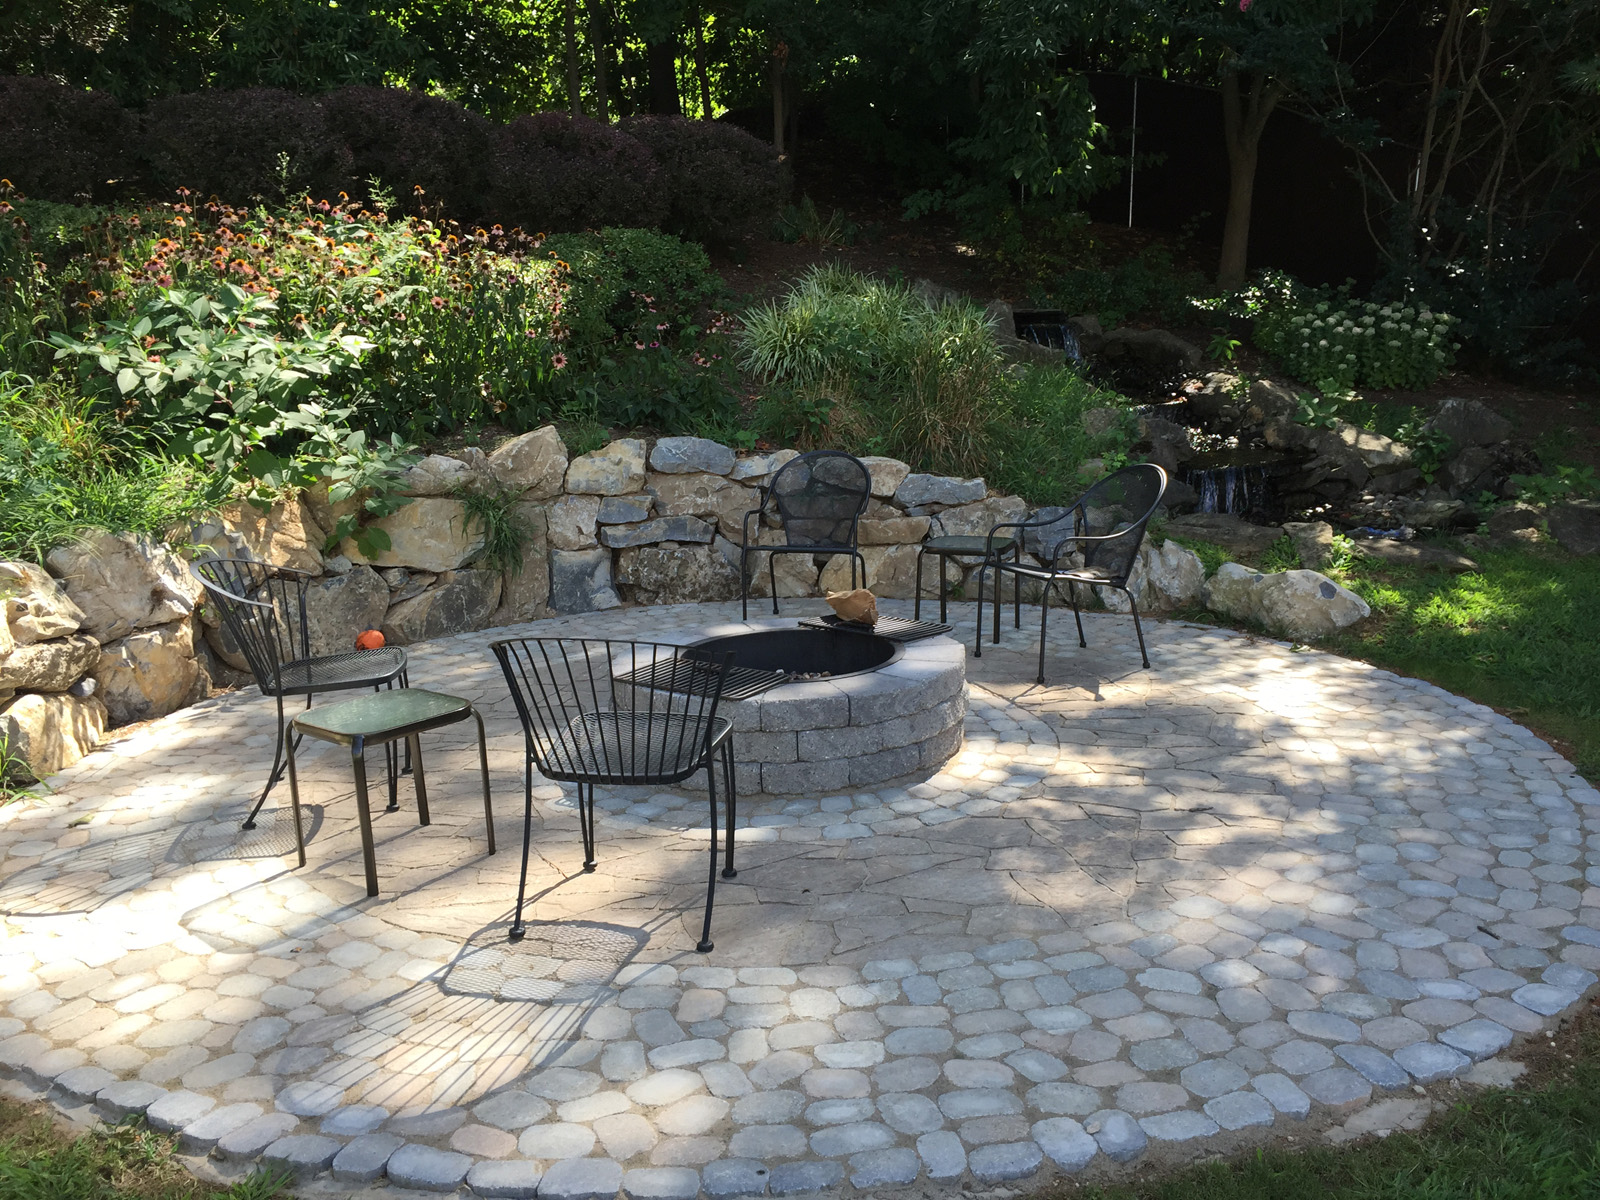 Professional patio paver landscape design company in Long Island, NY